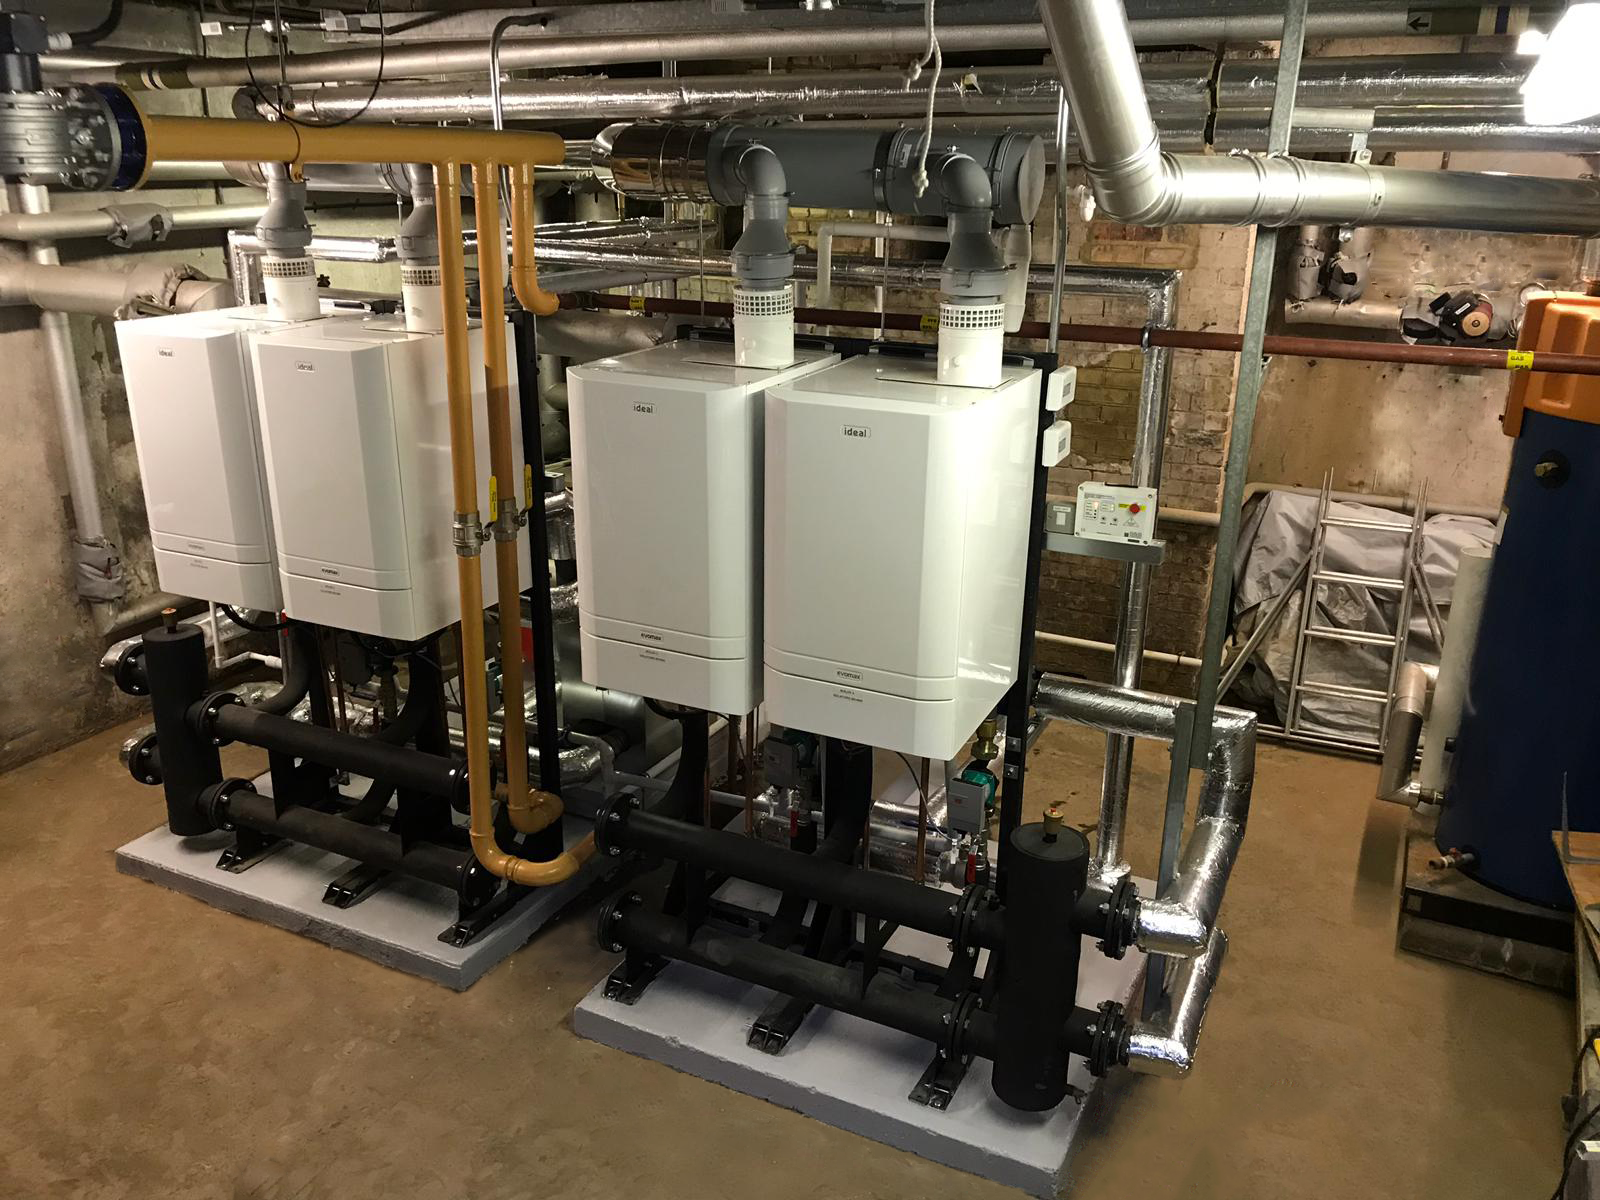 Replacement Boilers for Frances Barsdley Academy